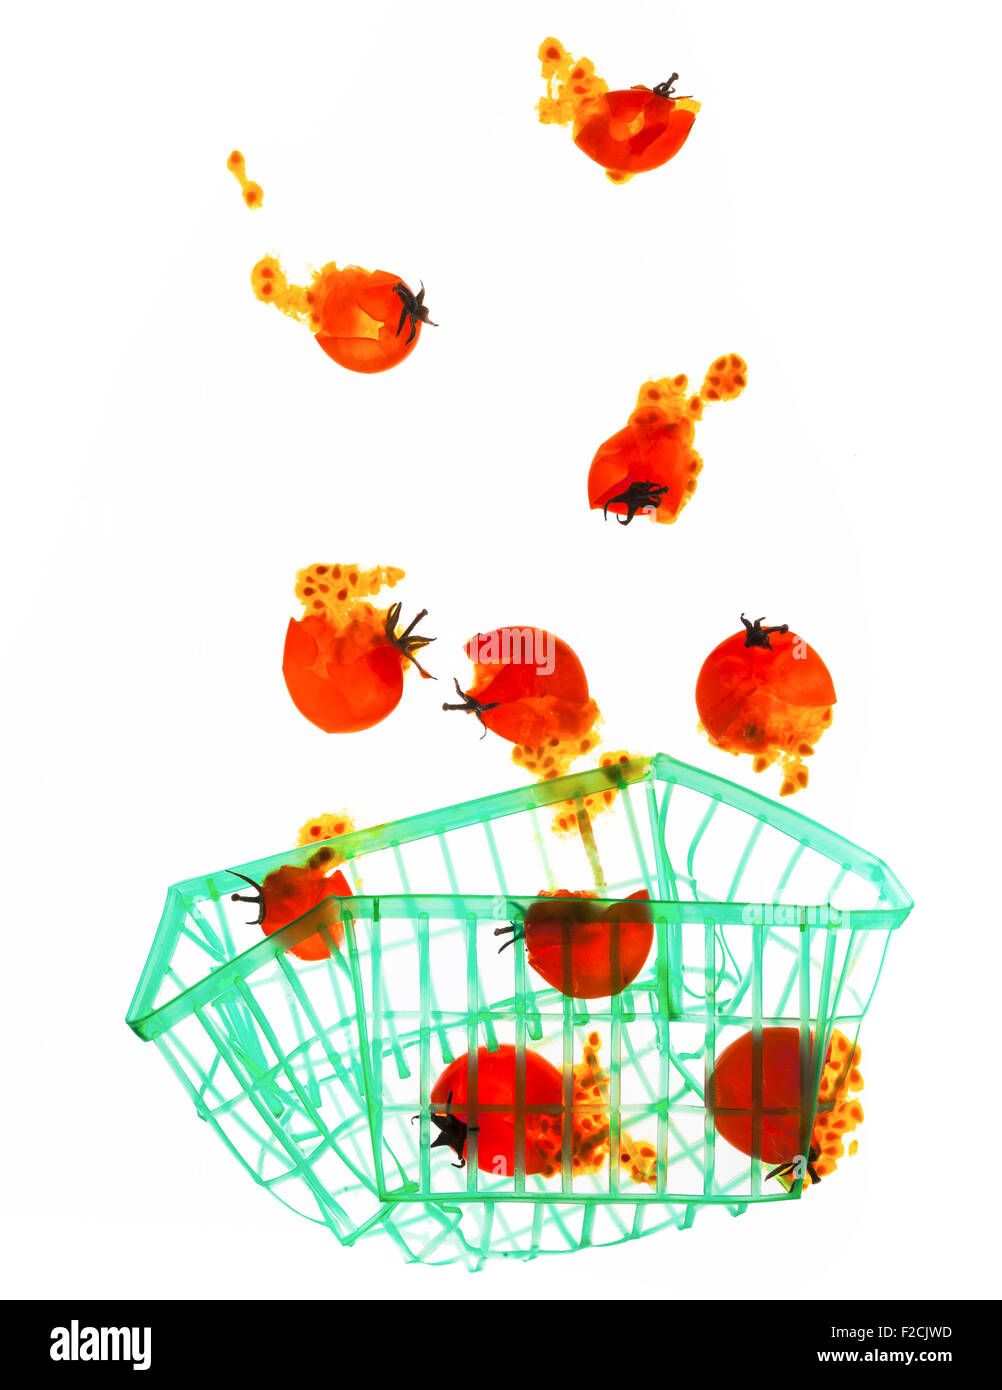 Smashed cherry tomatoes rise out of a flattened plastic green carton - Stock Image